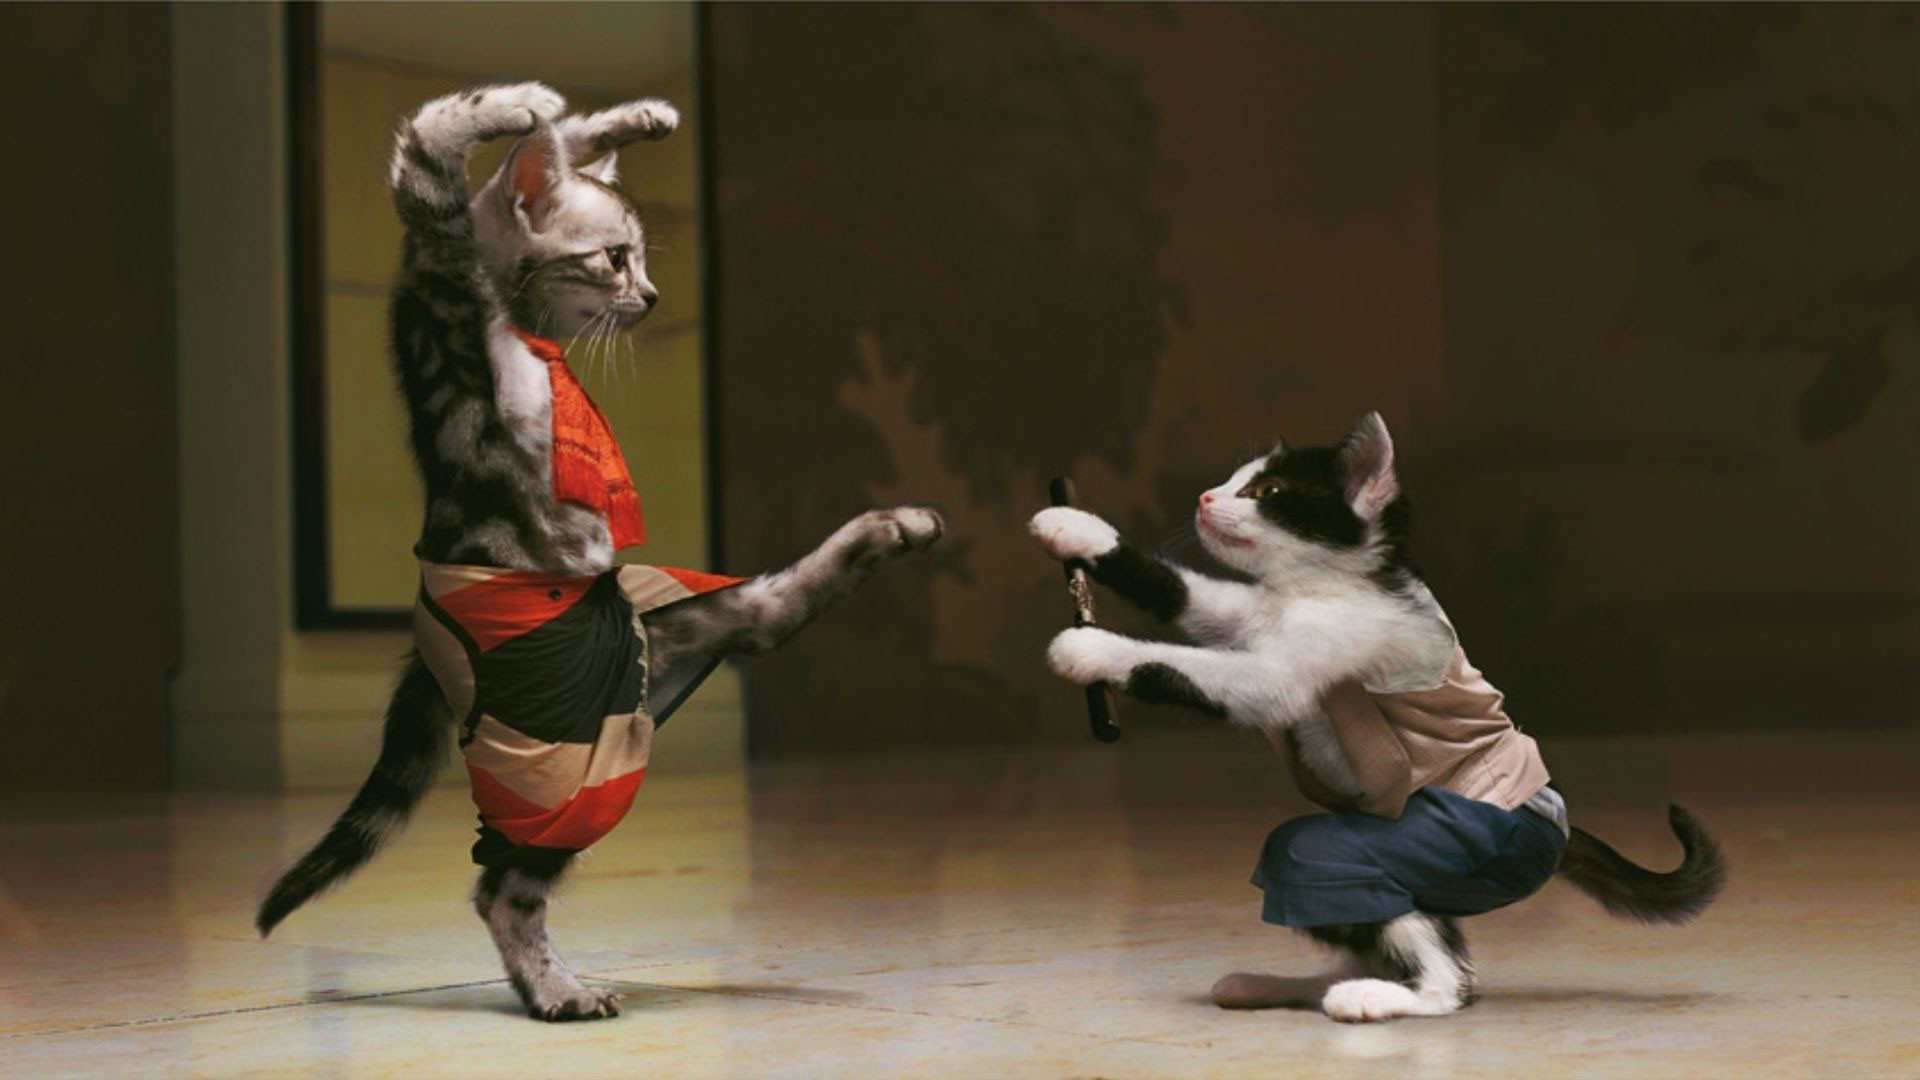 1920x1080 Hd Pics Photos Attractive Funny Cat Martial Arts Fighting Quality Desktop Background Wallpaper Download A Few HD Wallpapers